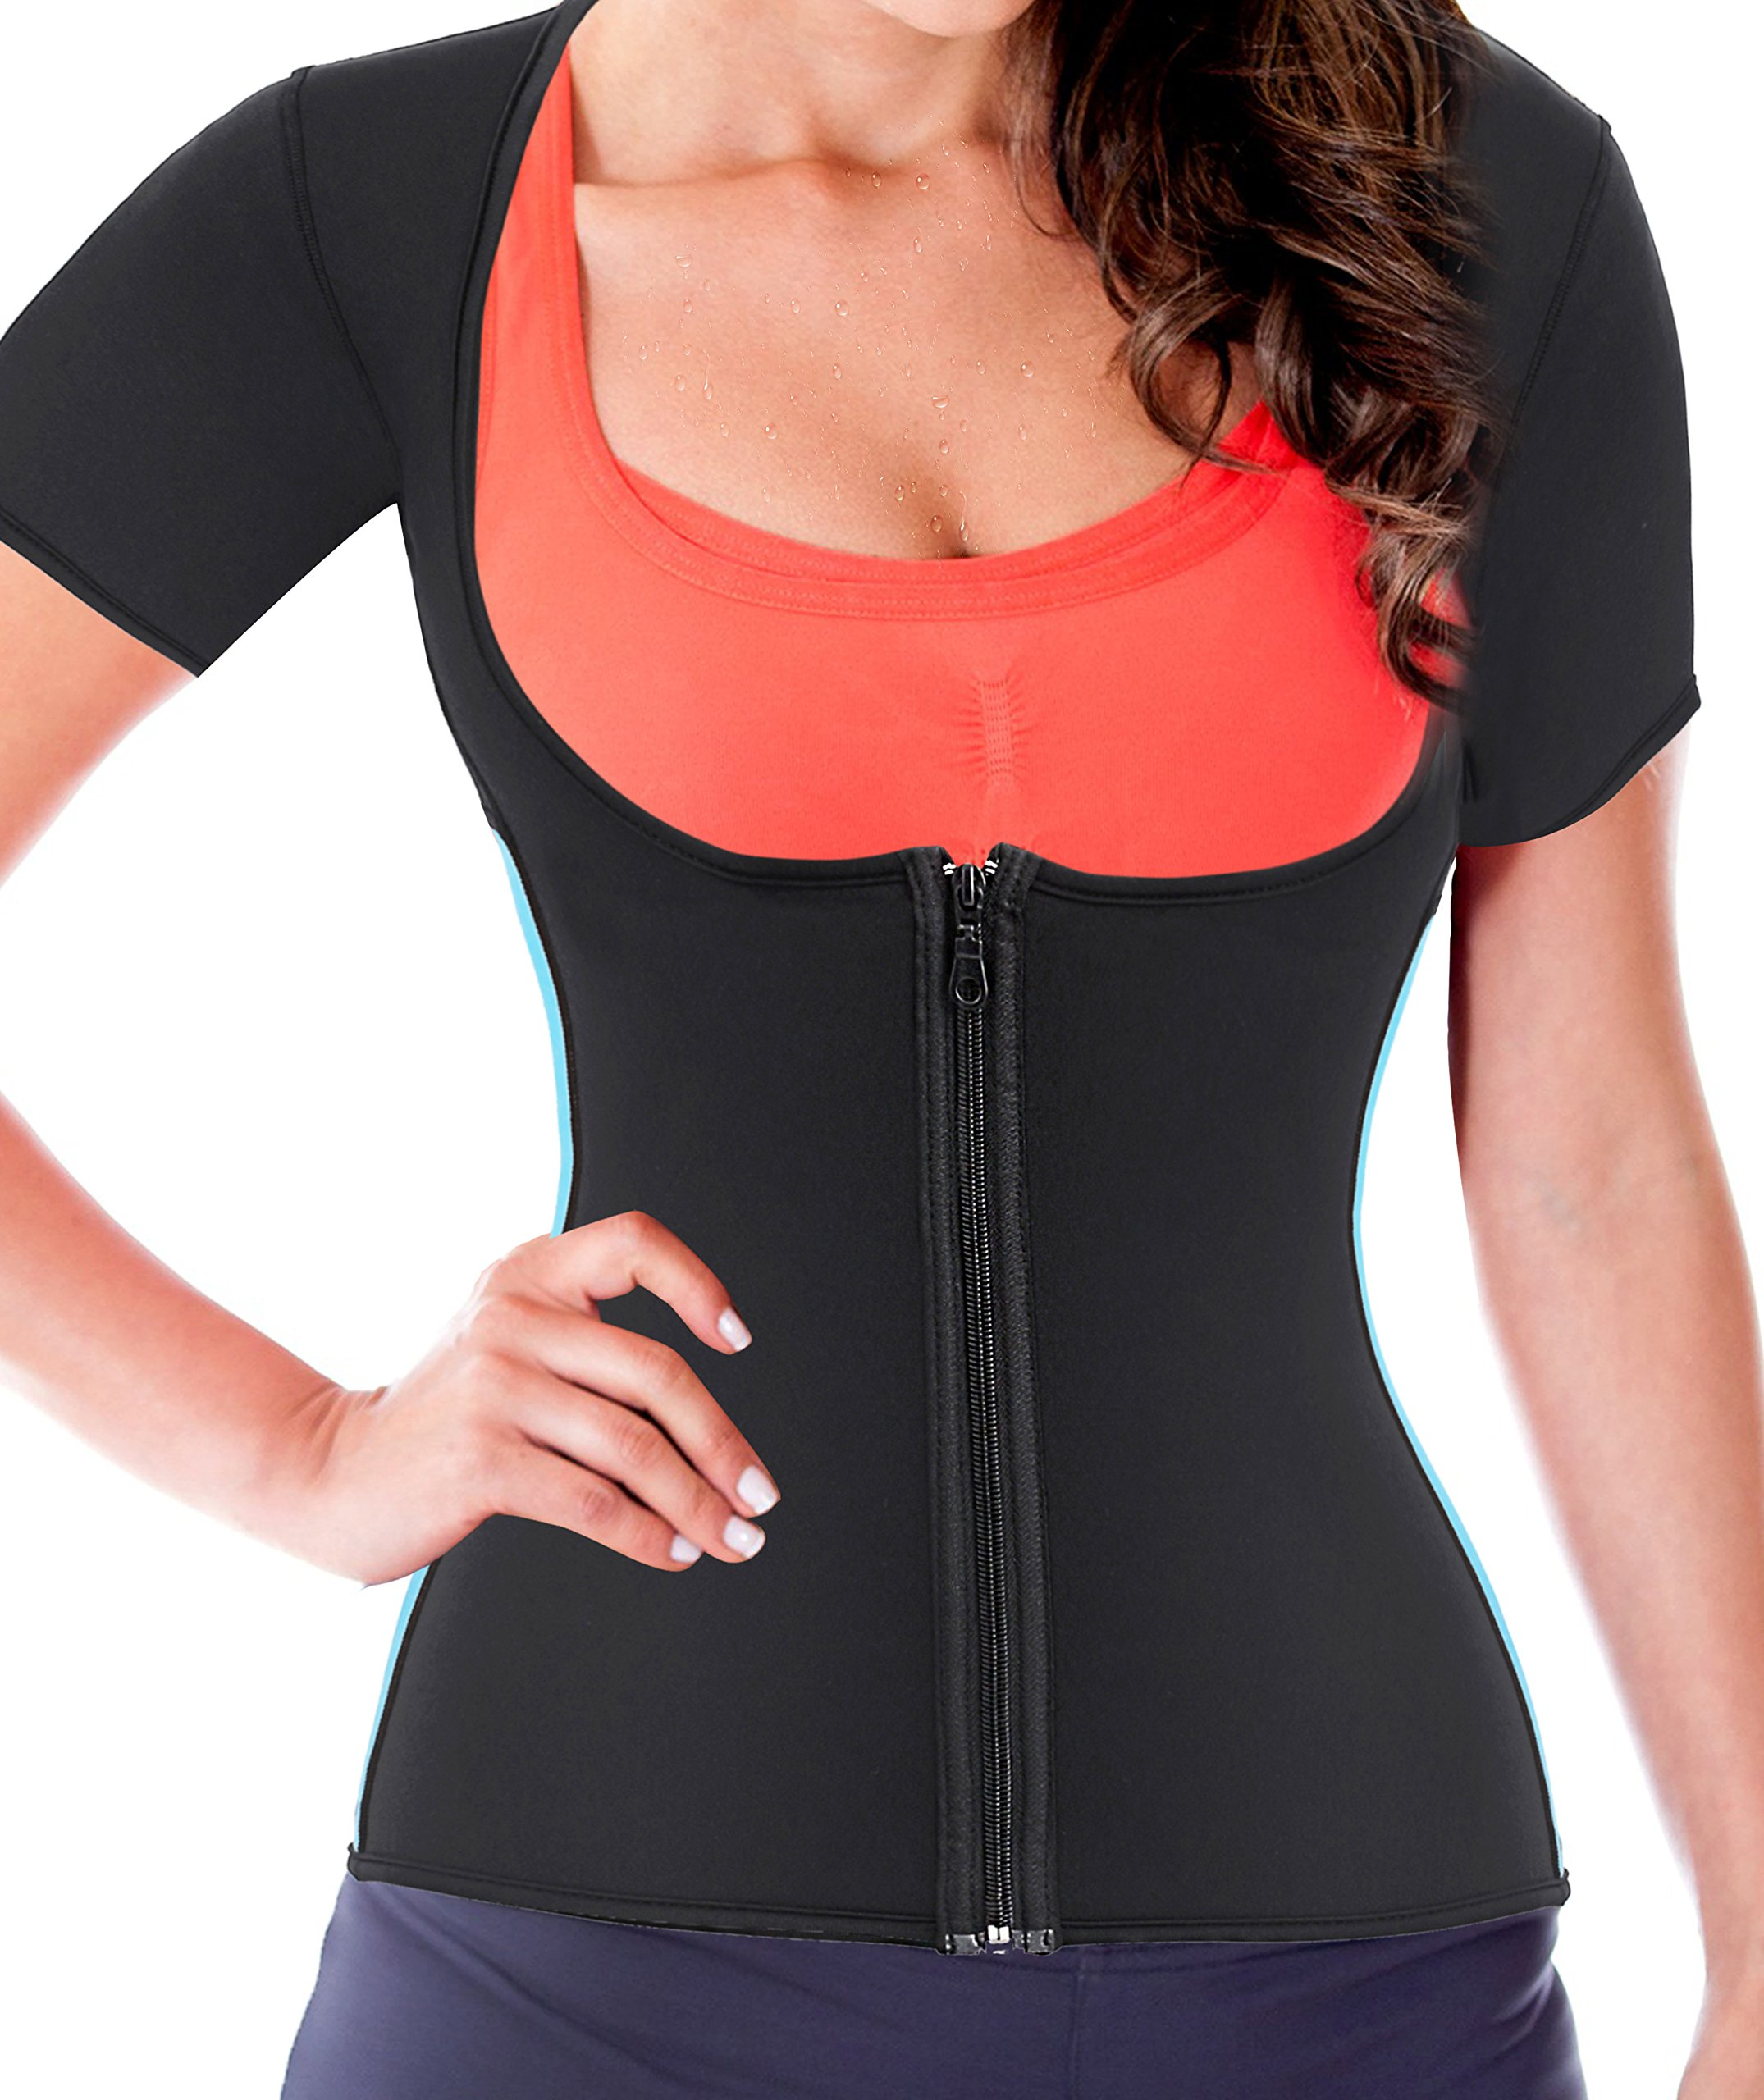 Gotoly Women Neoprene Zipper Front Hot Sweat Slimming Shirt Vest Body Shapers(M Fit 27.5-30.7 inch Waistline, Black) by Gotoly (Image #3)